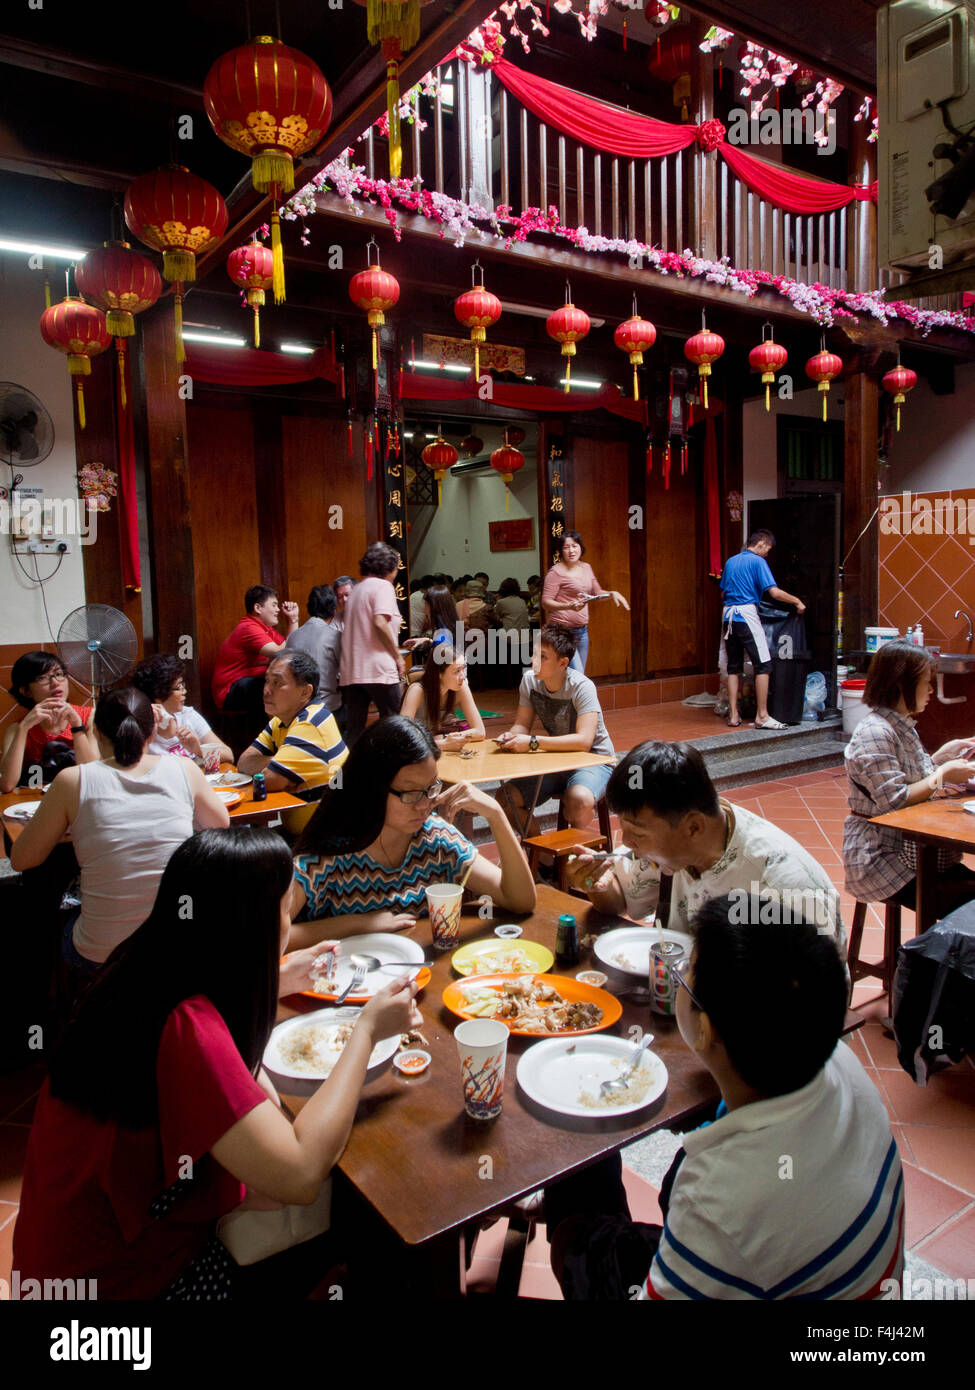 Tourists eat at traditional chinese shophouse restaurant in Malacca, UNESCO World Heritage Site, Malaysia, Southeast - Stock Image